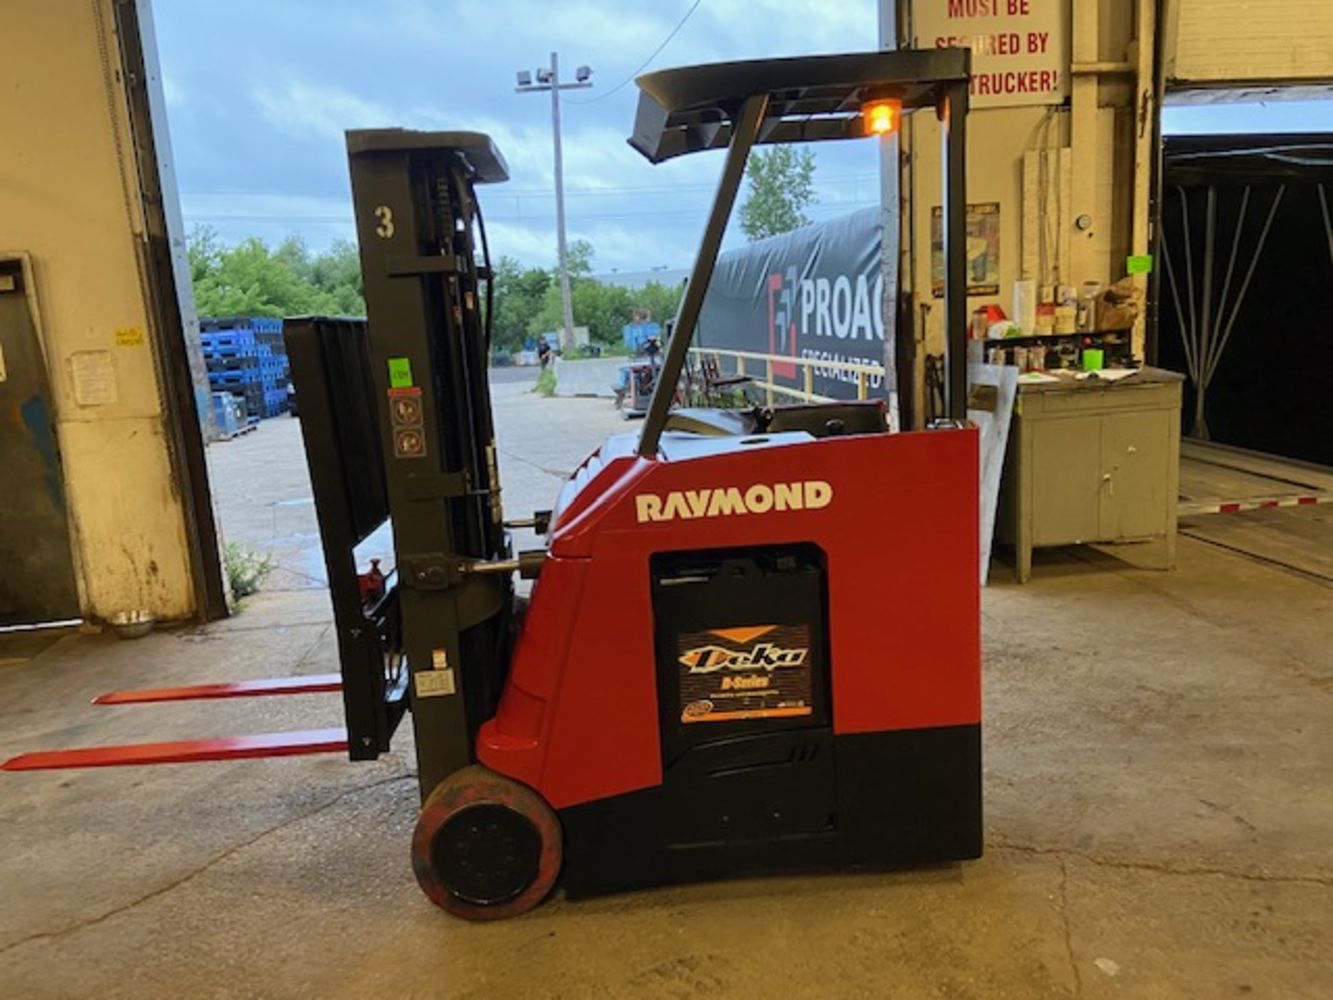 Auction of Assets of Sherwood Industries – HUGE ROBOTICS AUCTION With Forklifts, & More